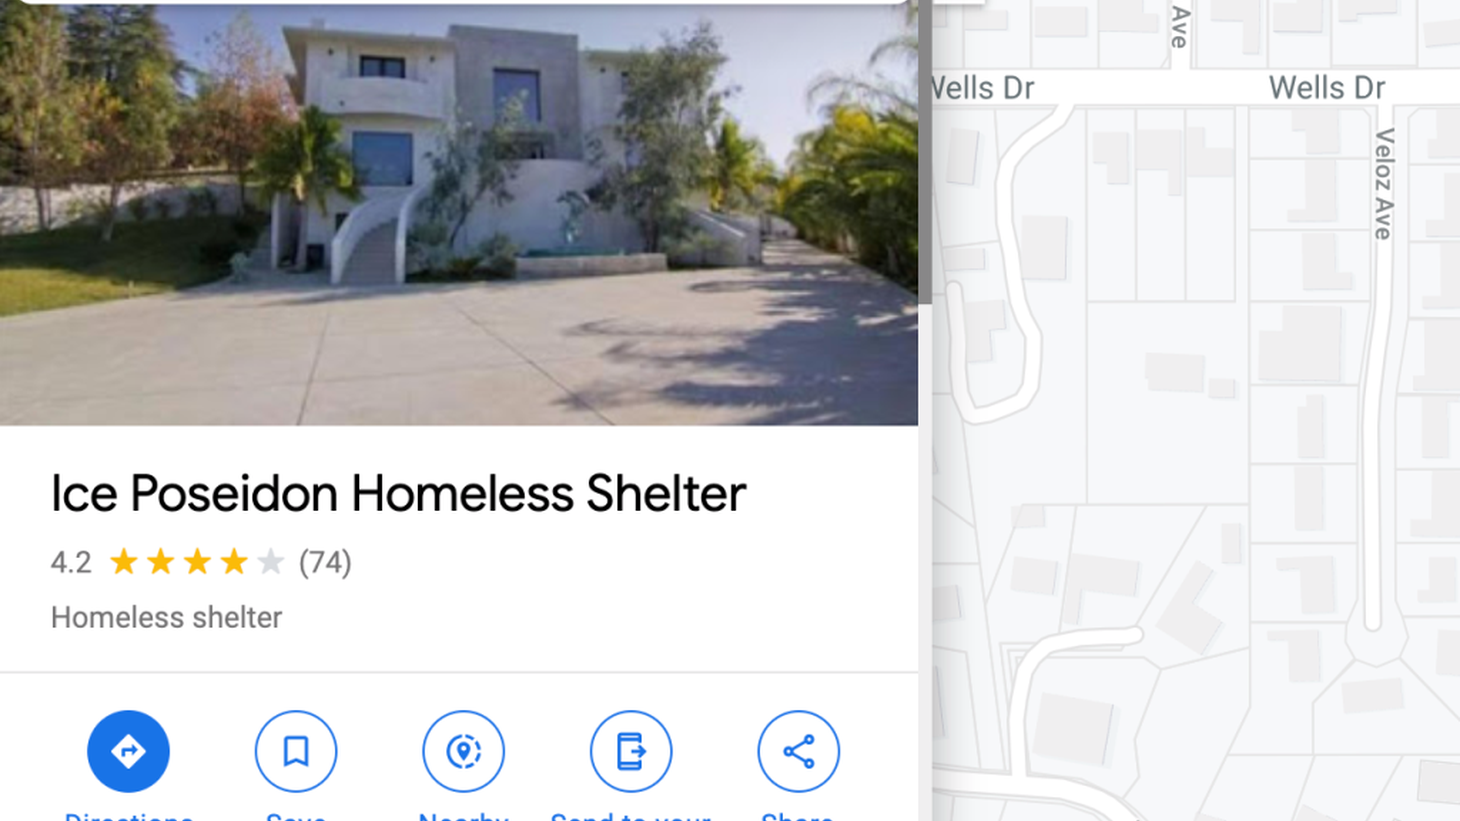 A mansion in Tarzana falsely labeled as a homeless shelter on Google Maps.